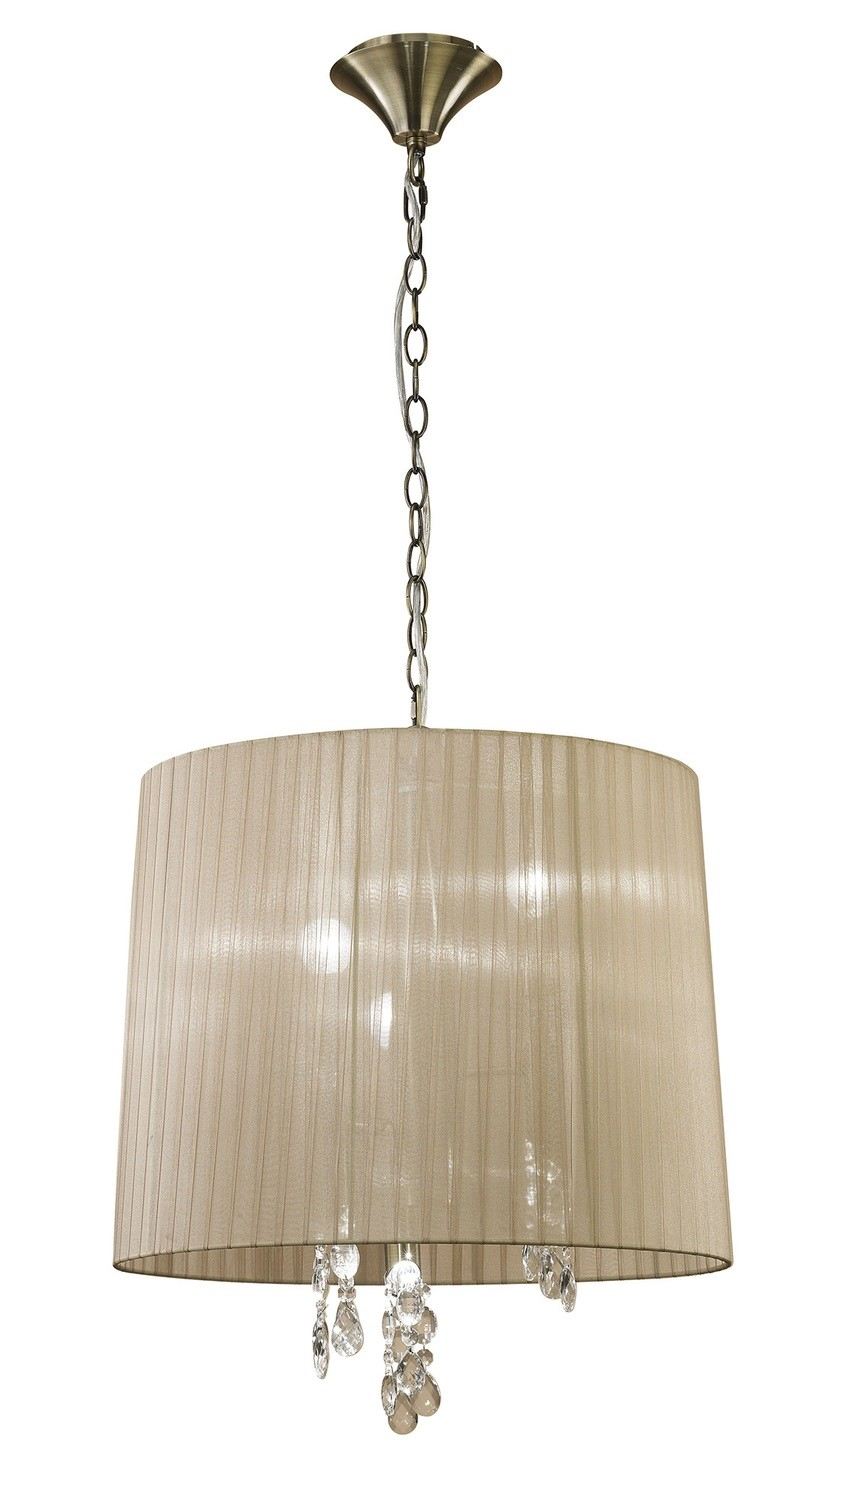 Tiffany Pendant 3+3 Light E14+G9, Antique Brass With Soft Bronze Shade & Clear Crystal